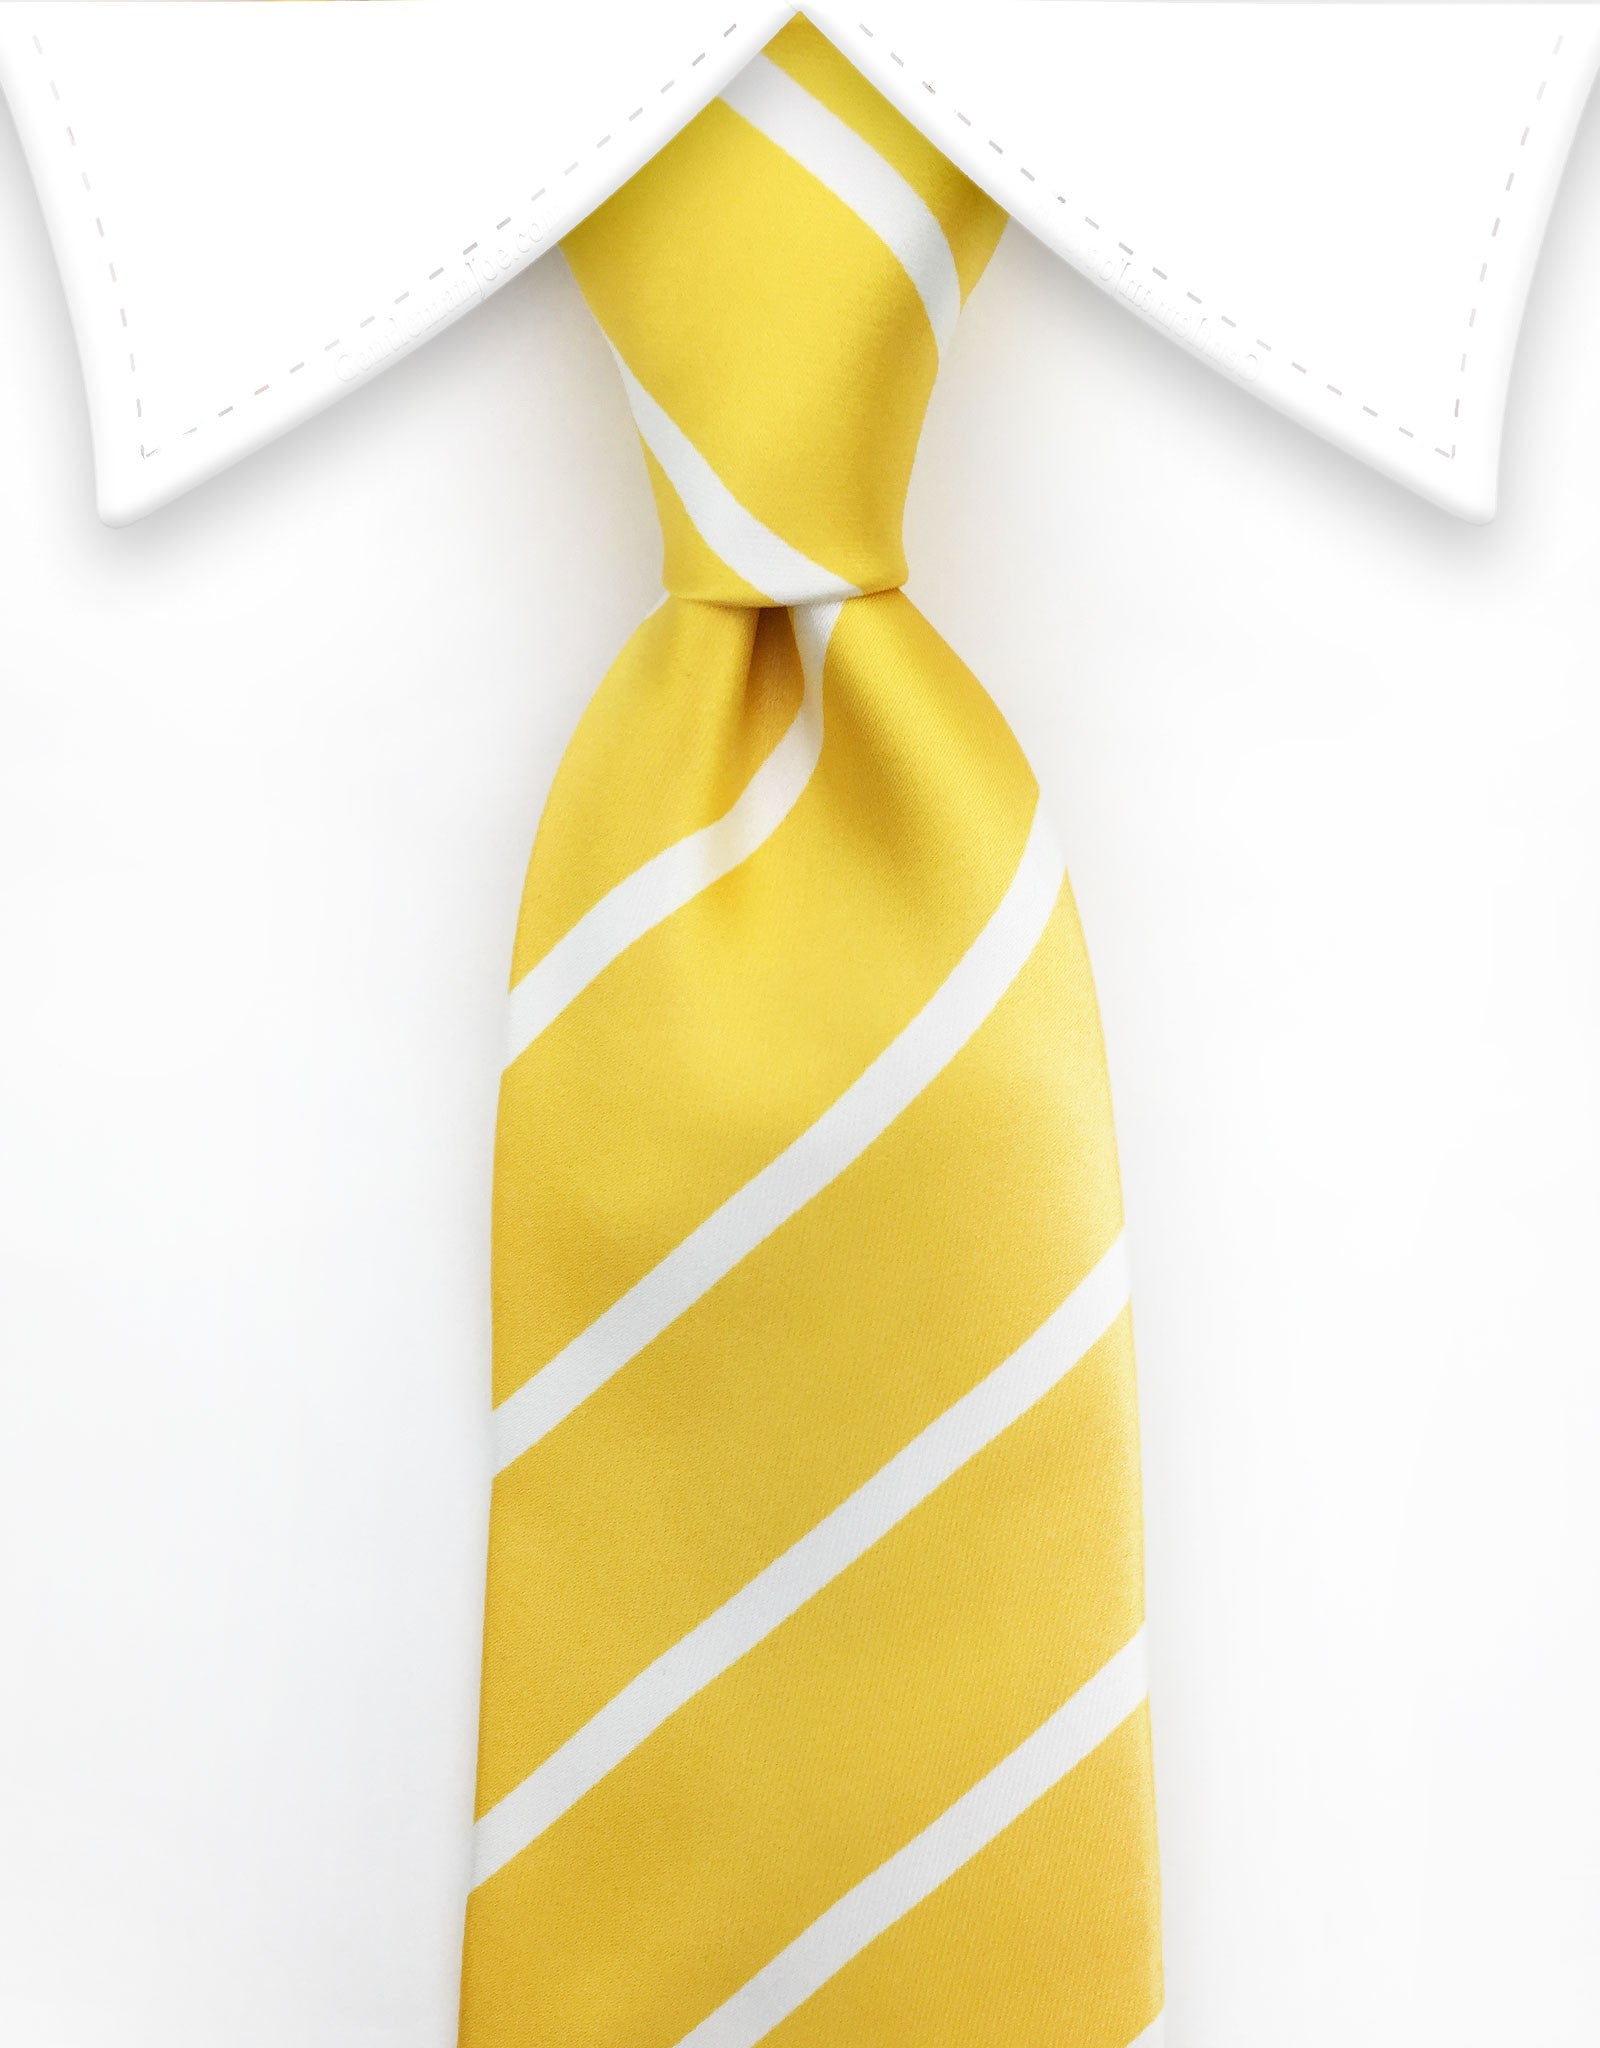 Yellow Tie with white stripes